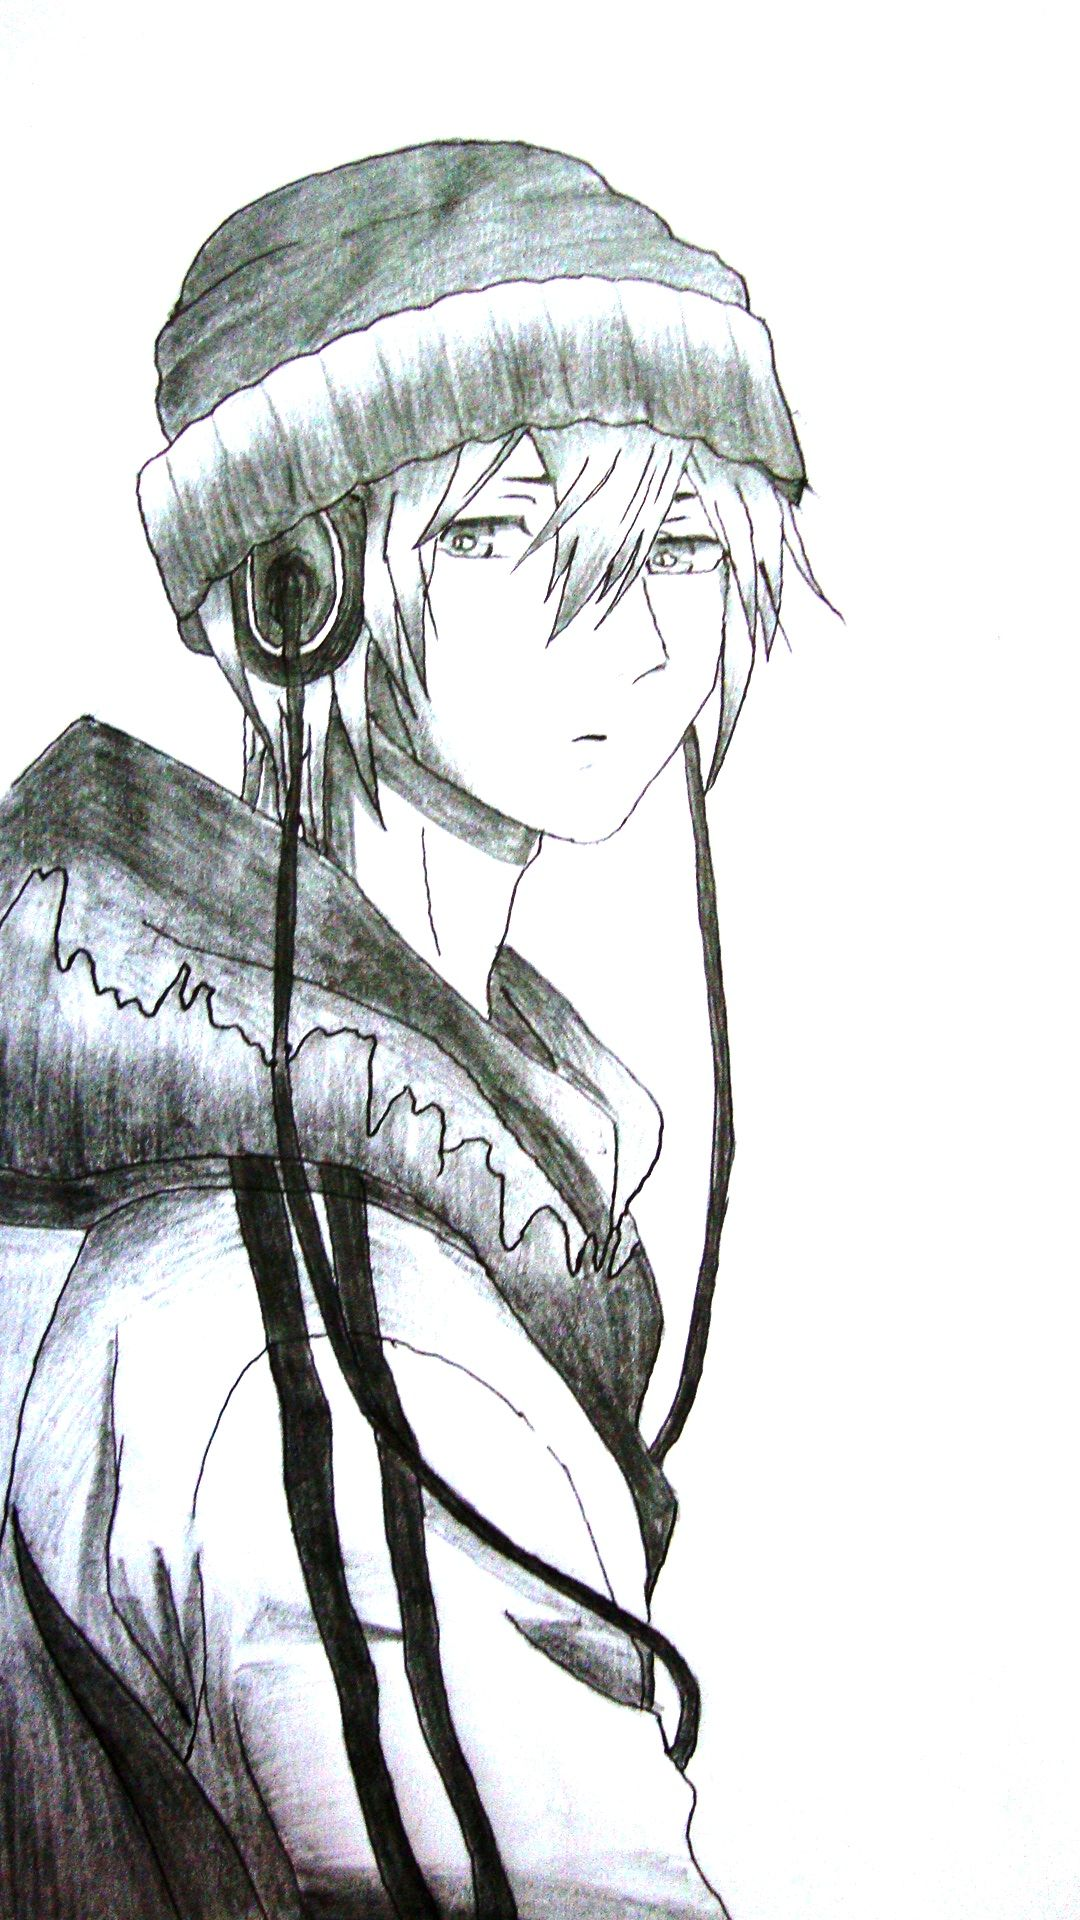 Anime headphones boy pencil sketch boy sketch hand art anime guys headphones